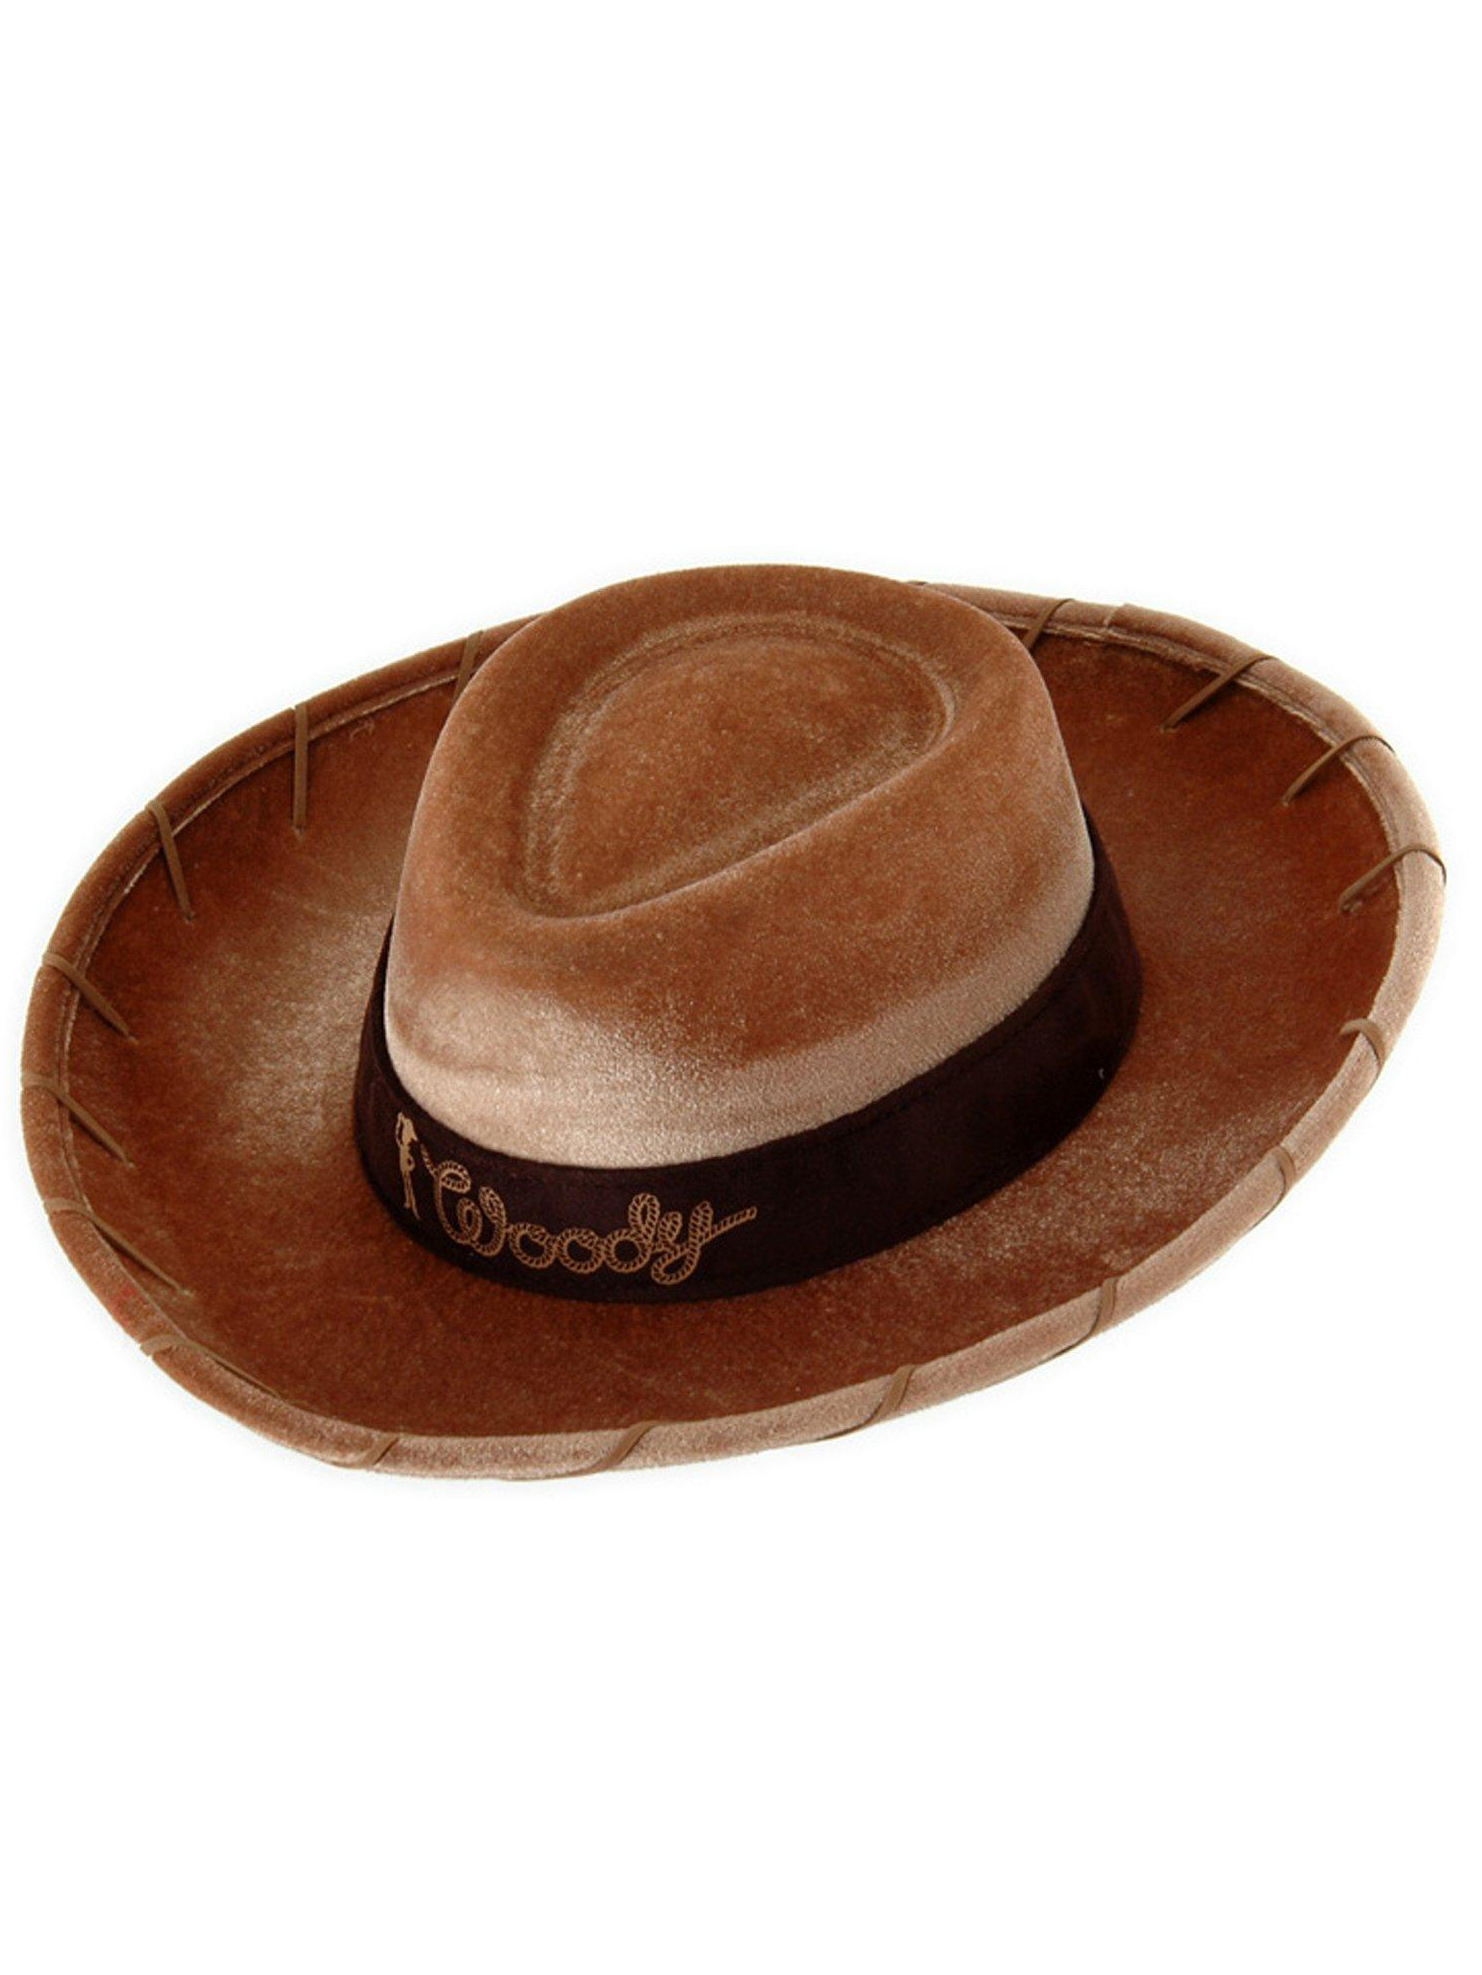 Elope Toy Story - Woody Hat Child